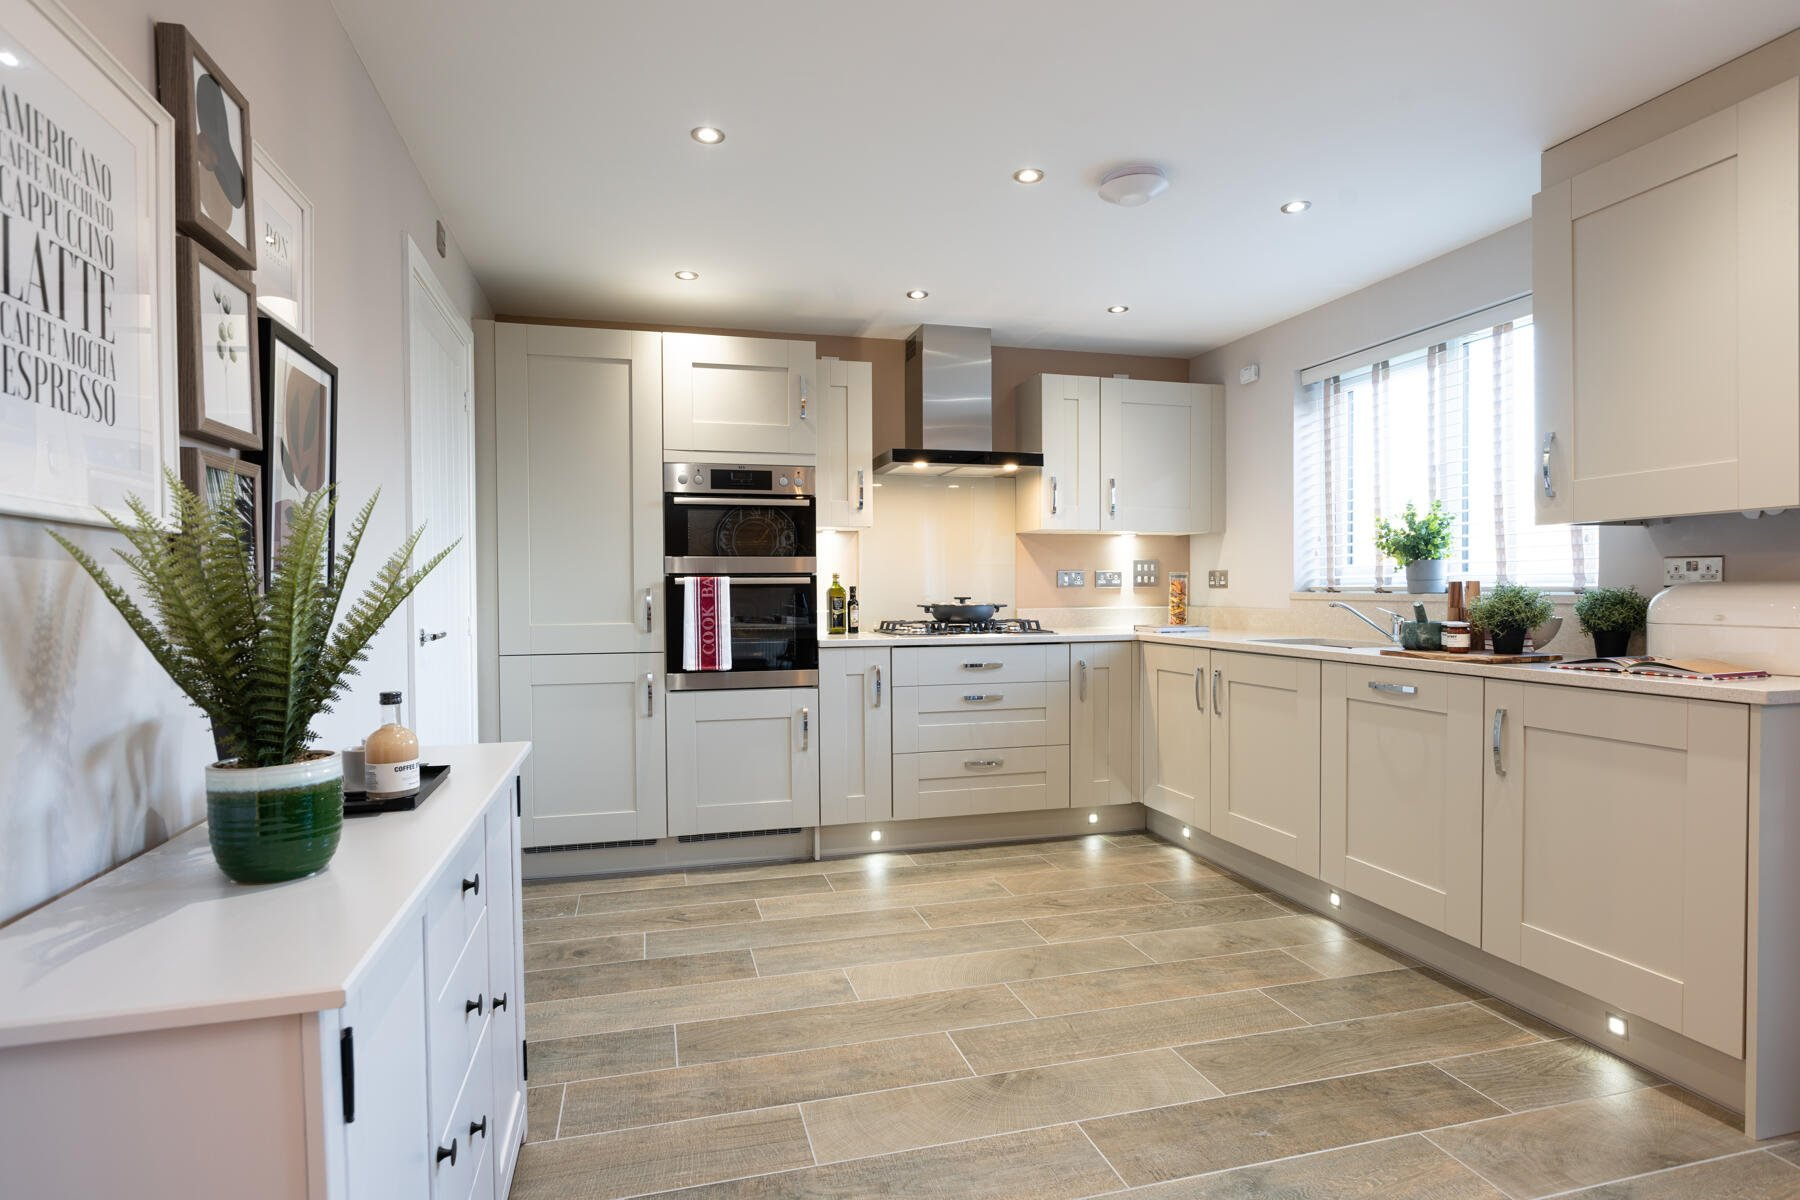 TW EX_Mountbatten Mews_PA44_Midford_Kitchen 1_1800x1200